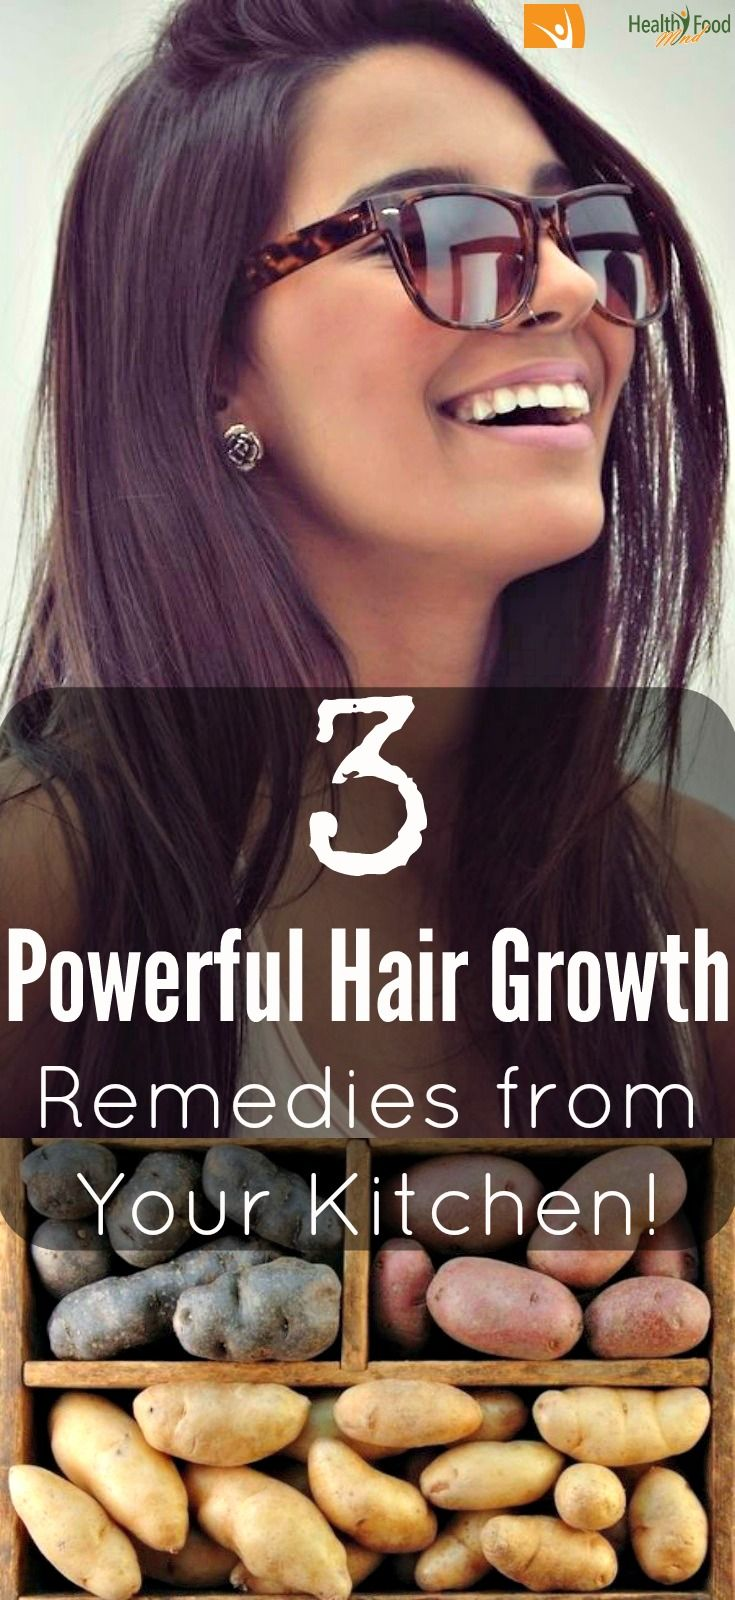 Did you know that you can encourage hair growth with just 3 simple hair growth remedies form your kitchen? You can definitely stimulate more vivid and thicker hair growth, with normal effort, just using the right ingredients! - See more at: http://www.healthyfoodmind.com/powerful-hair-growth-remedies-from-your-kitchen/#sthash.IY0OIAIZ.dpuf